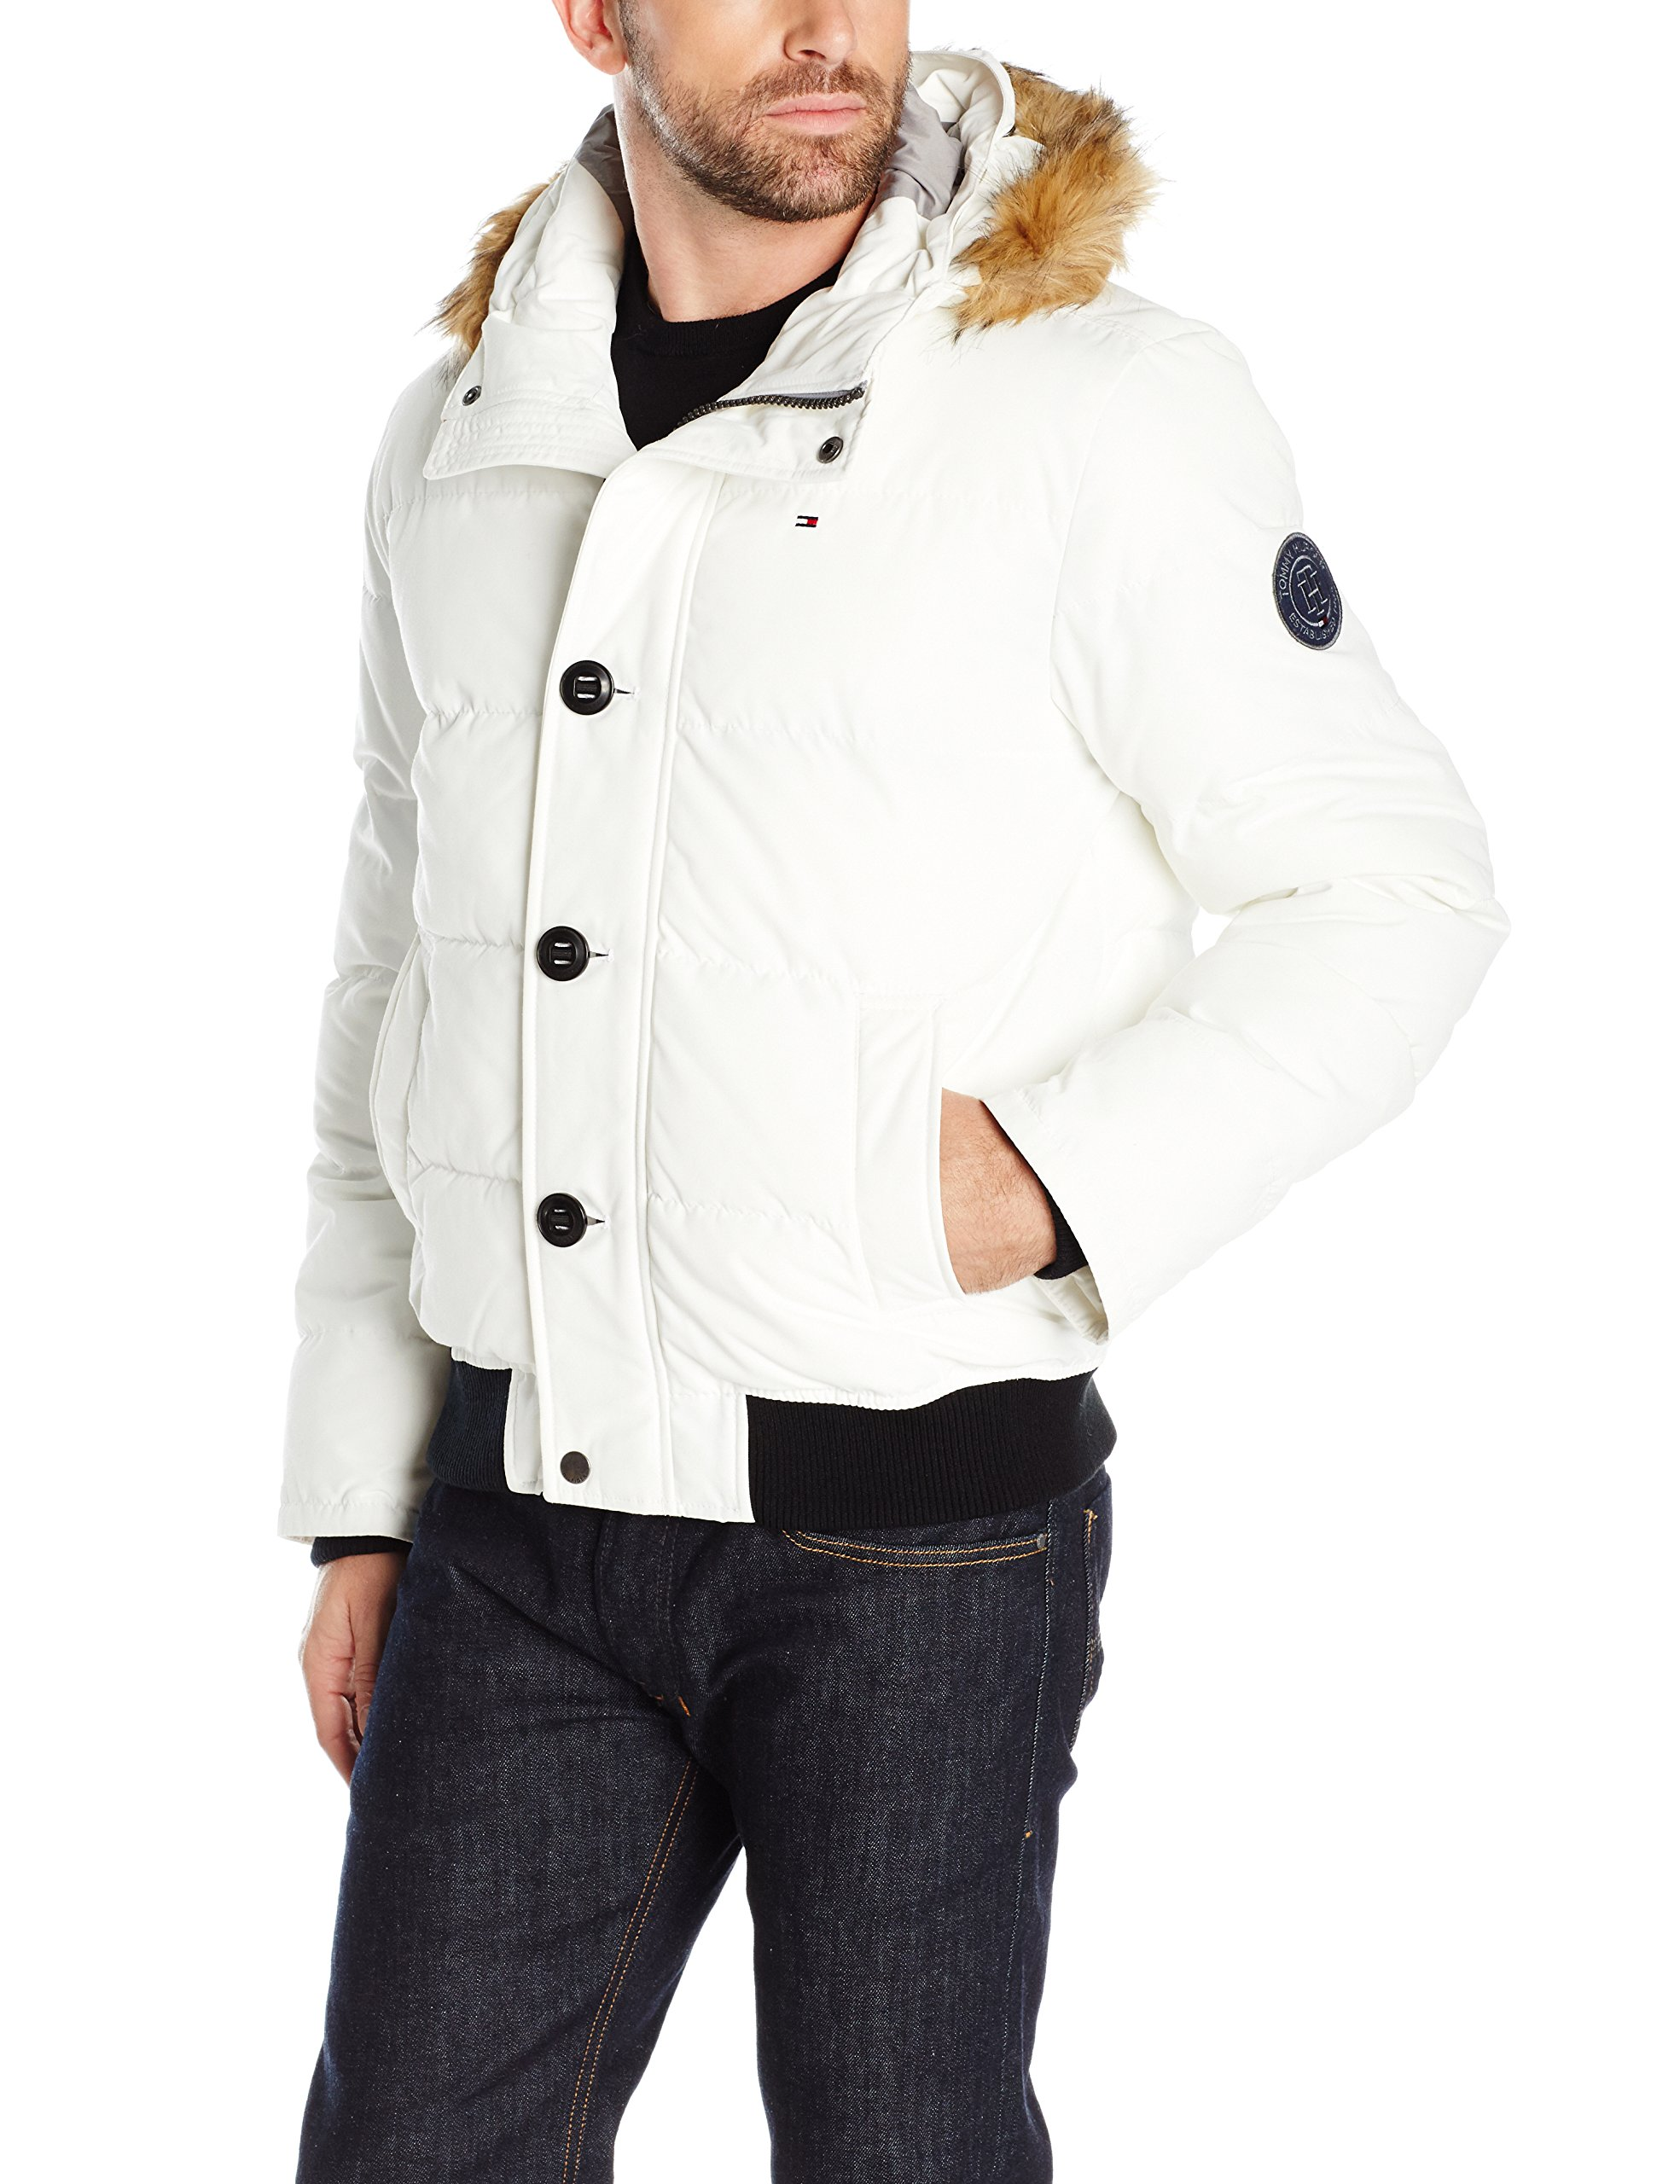 Tommy Hilfiger Men's Arctic Cloth Quilted Snorkel Bomber with Removable Faux Fur Trimmed Hood, White, L by Tommy Hilfiger